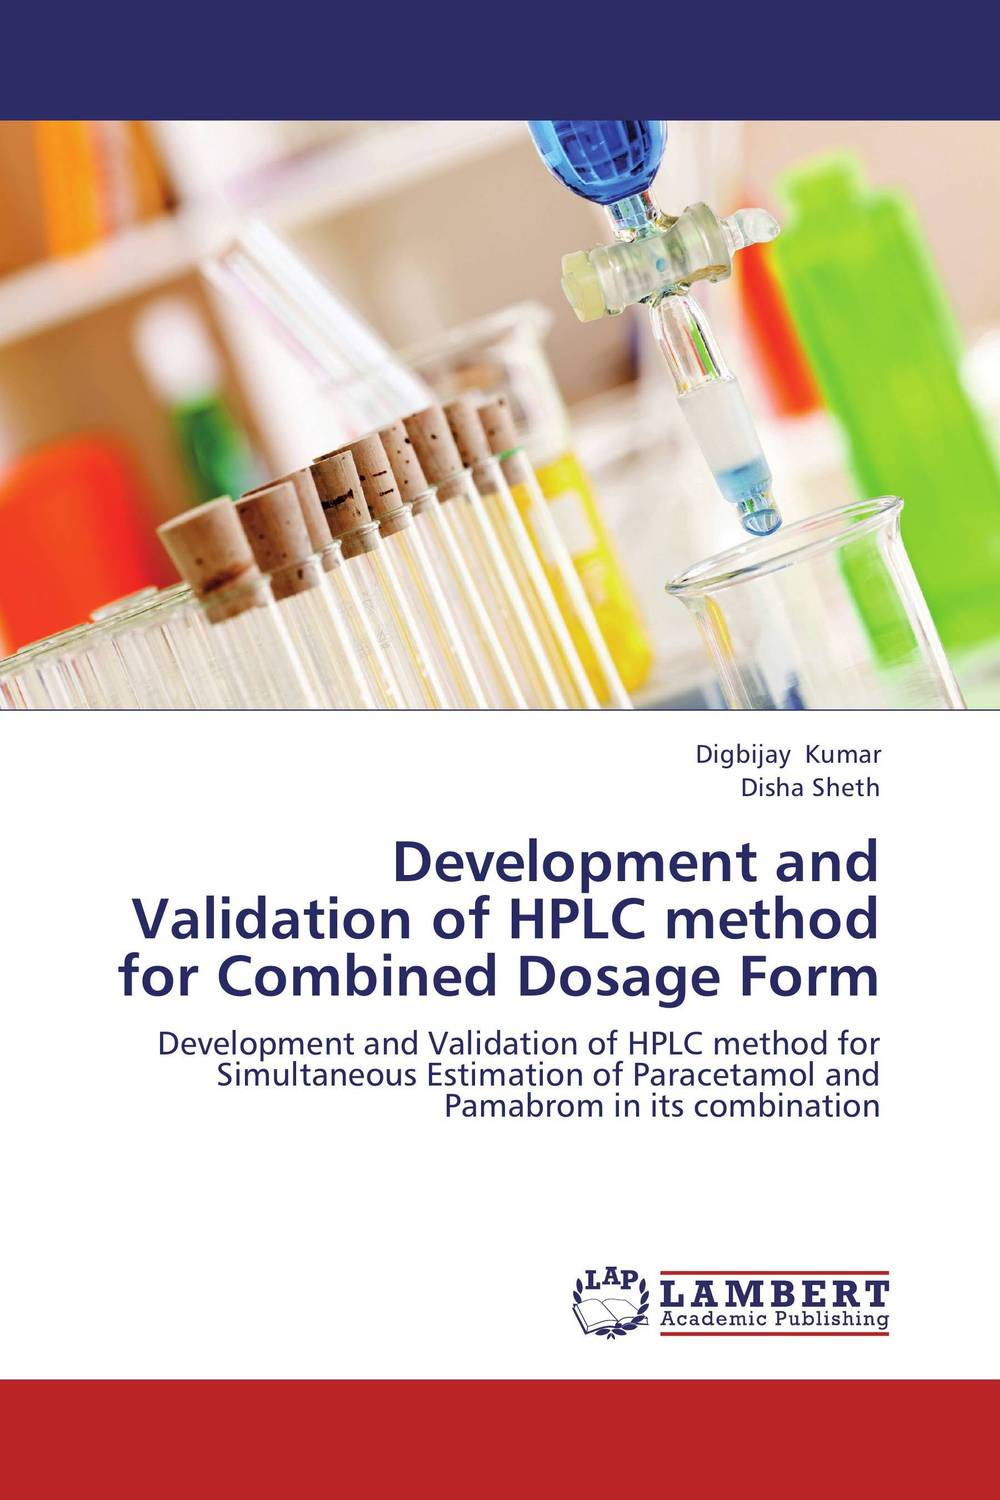 Development and Validation of HPLC method for Combined Dosage Form analytical method development